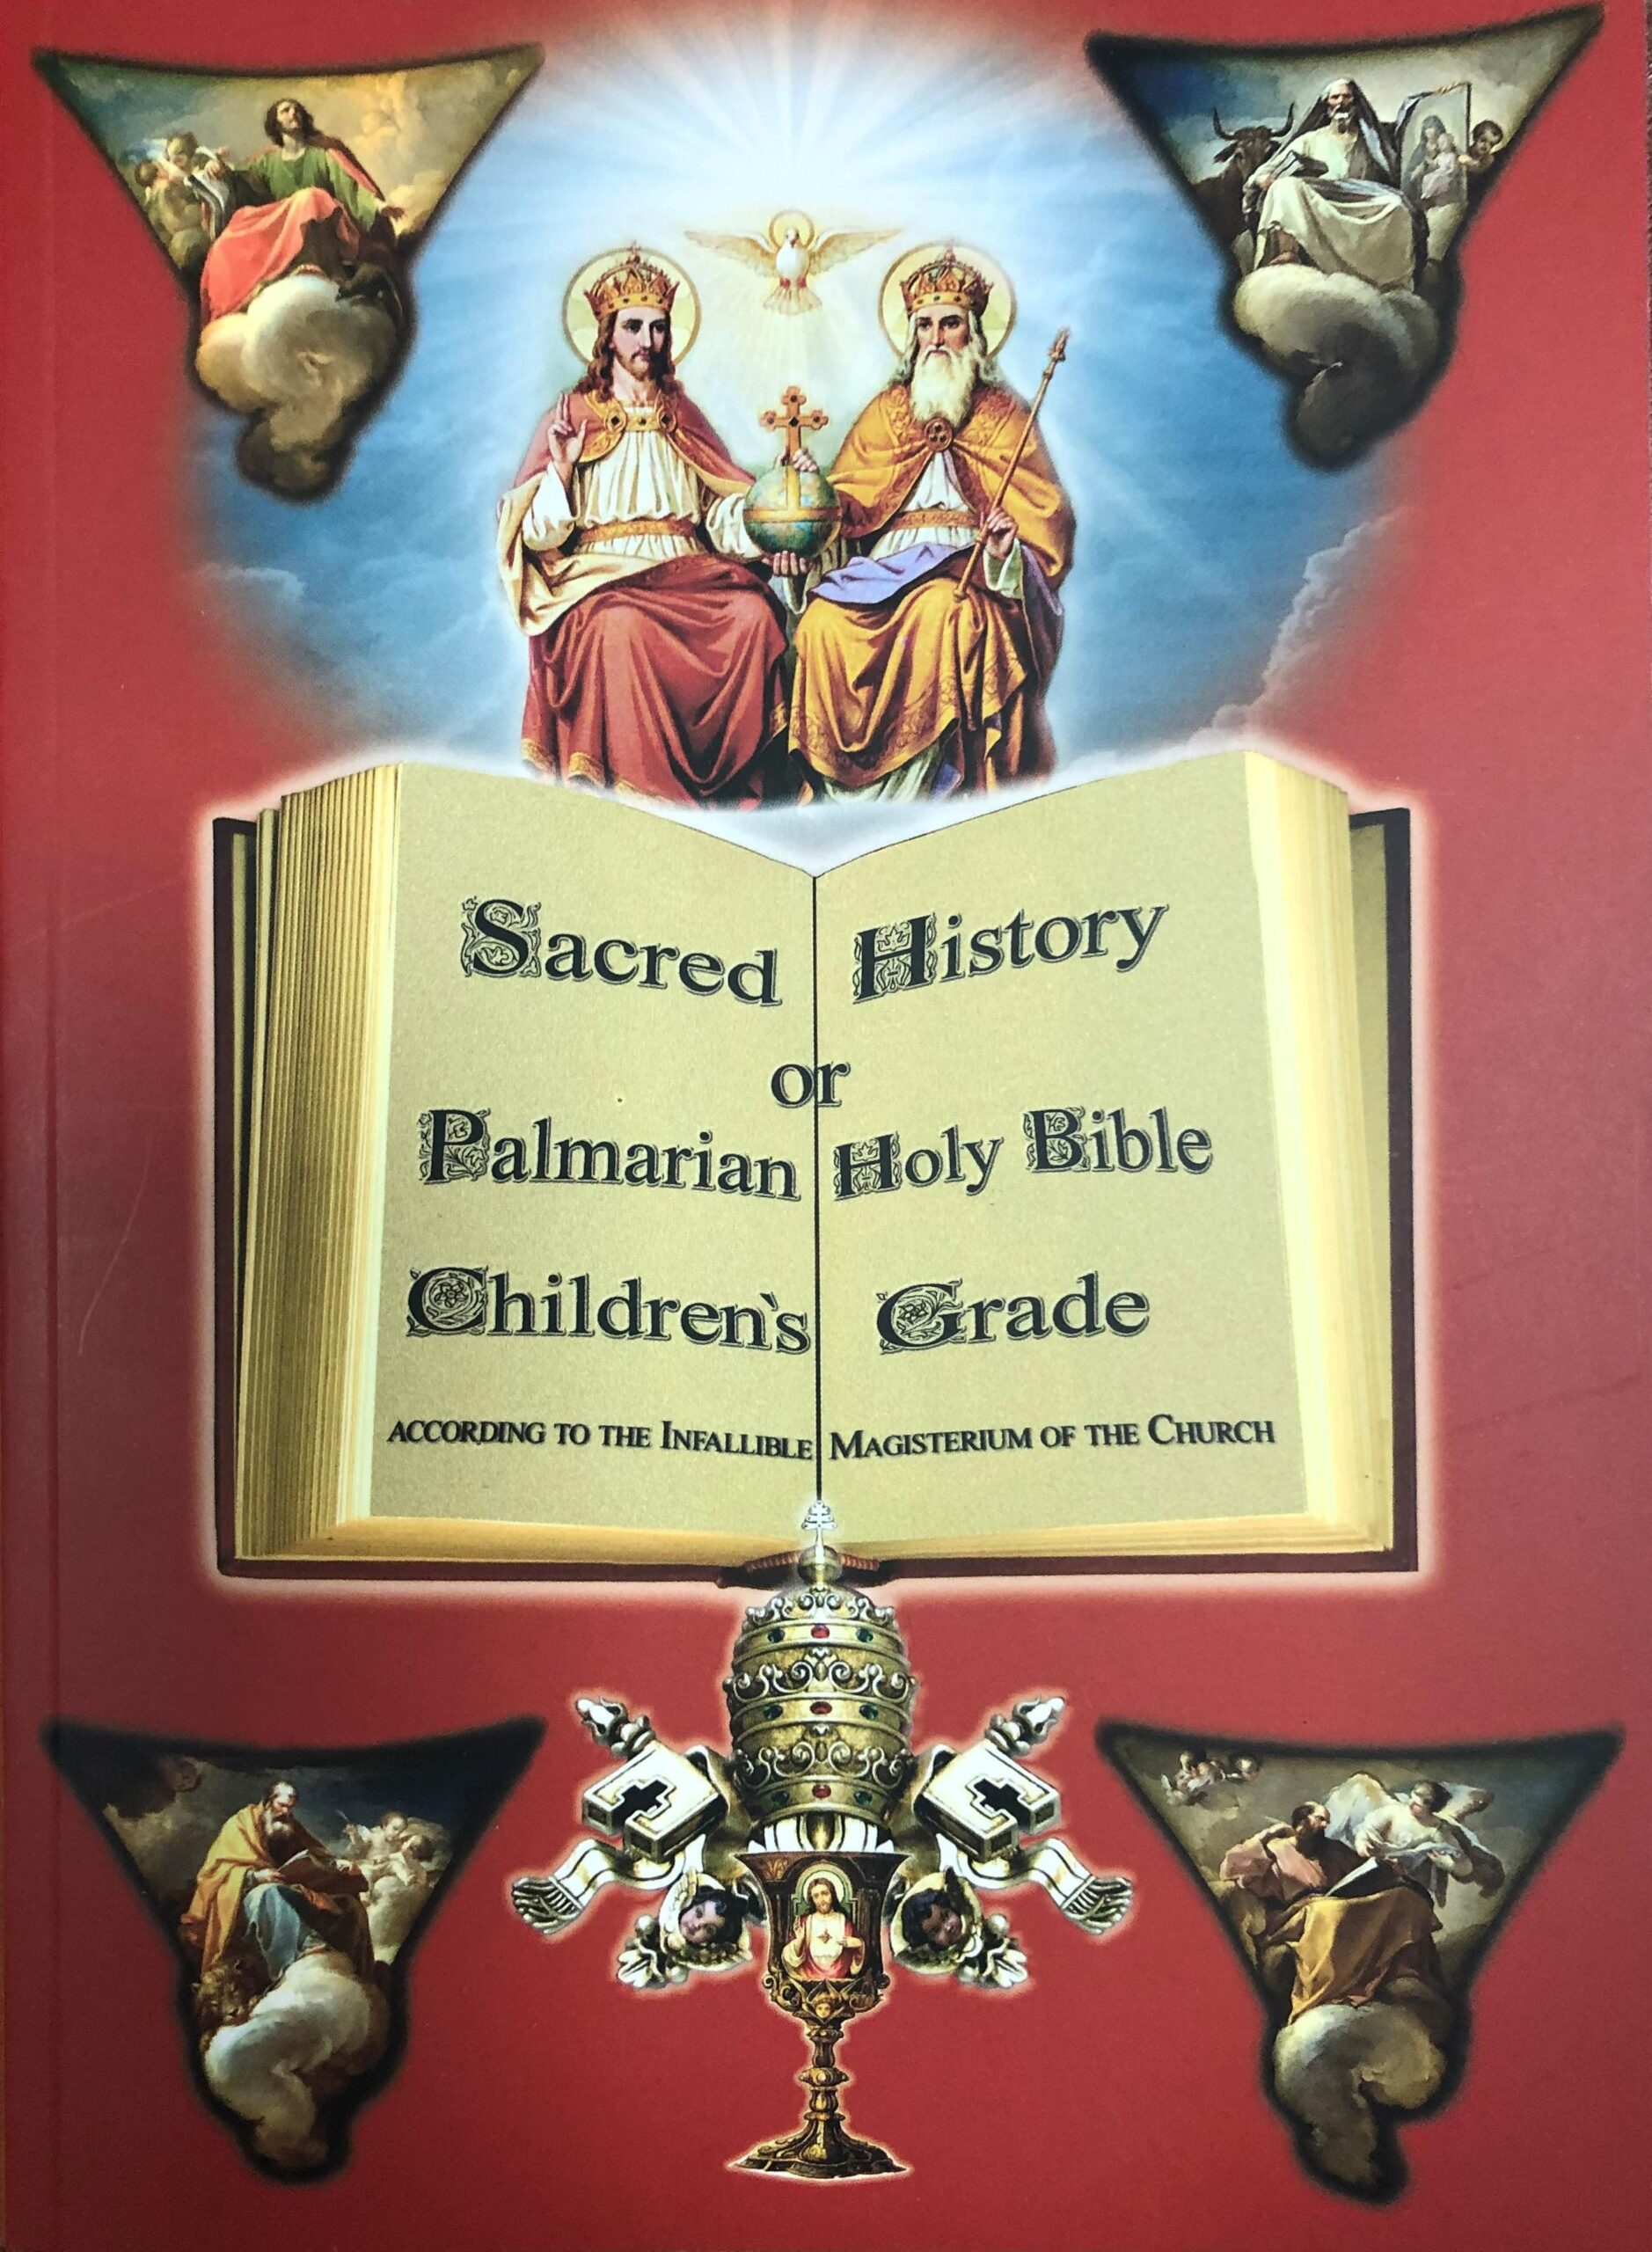 Sacred History or <br>Palmarian Holy Bible Children's Grade<br><br>See more